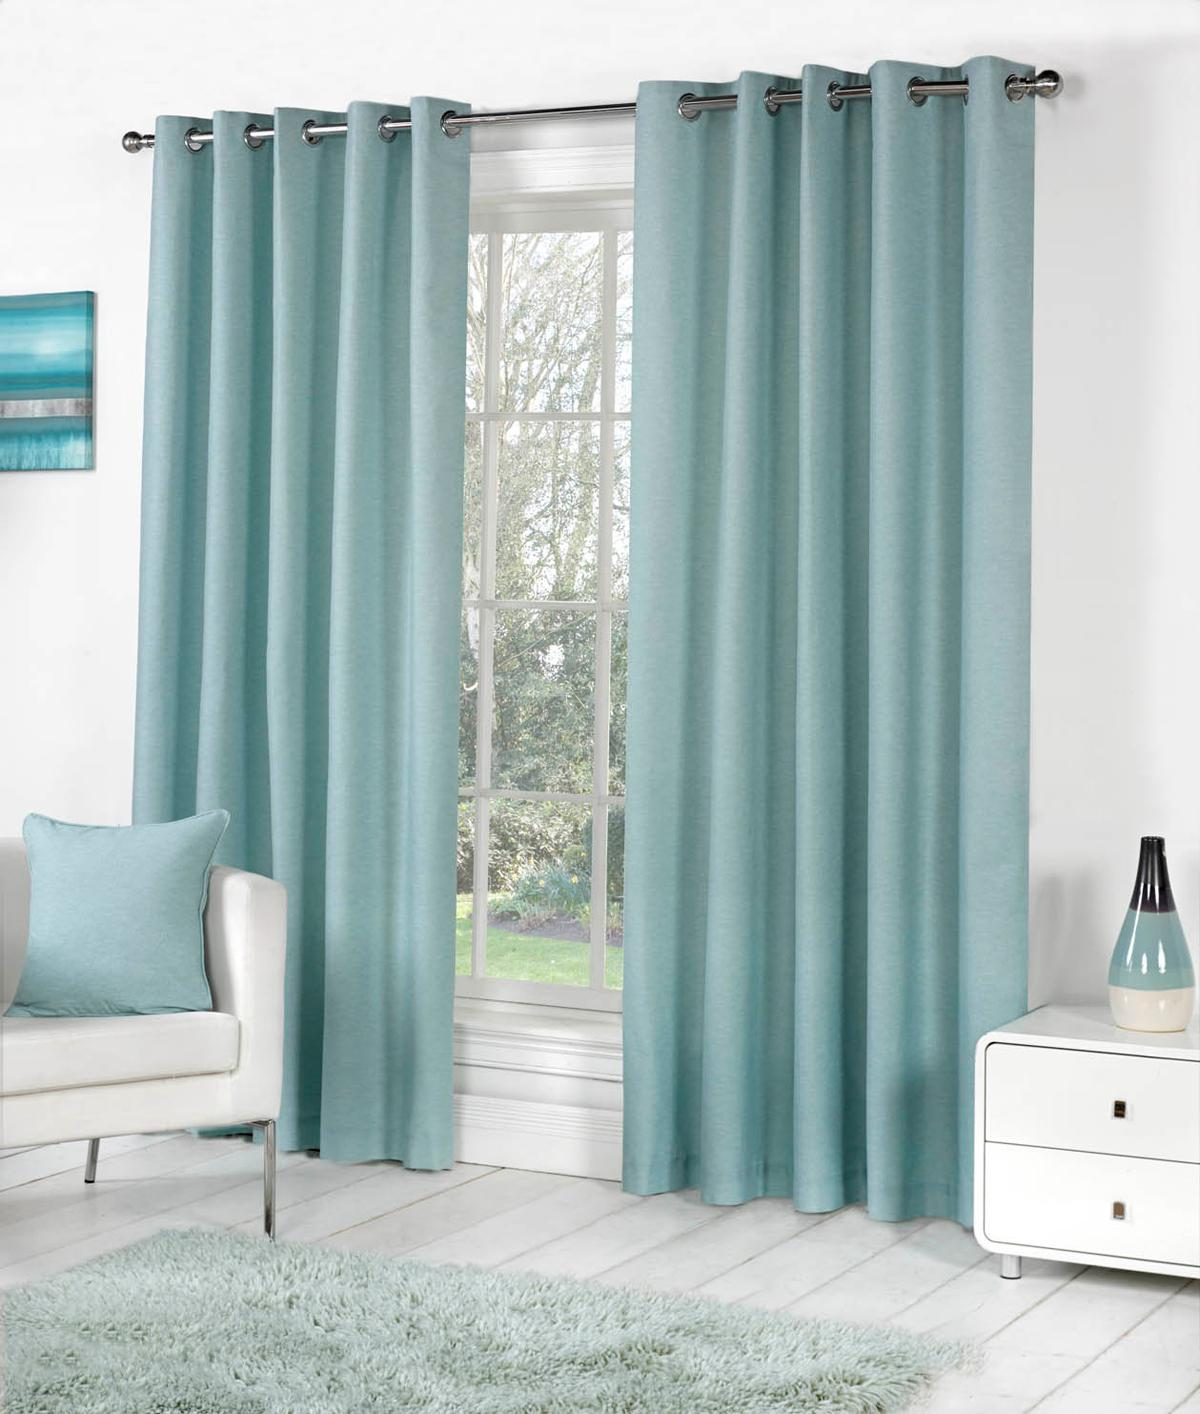 Sorbonne Eyelet Curtains In Duck Egg